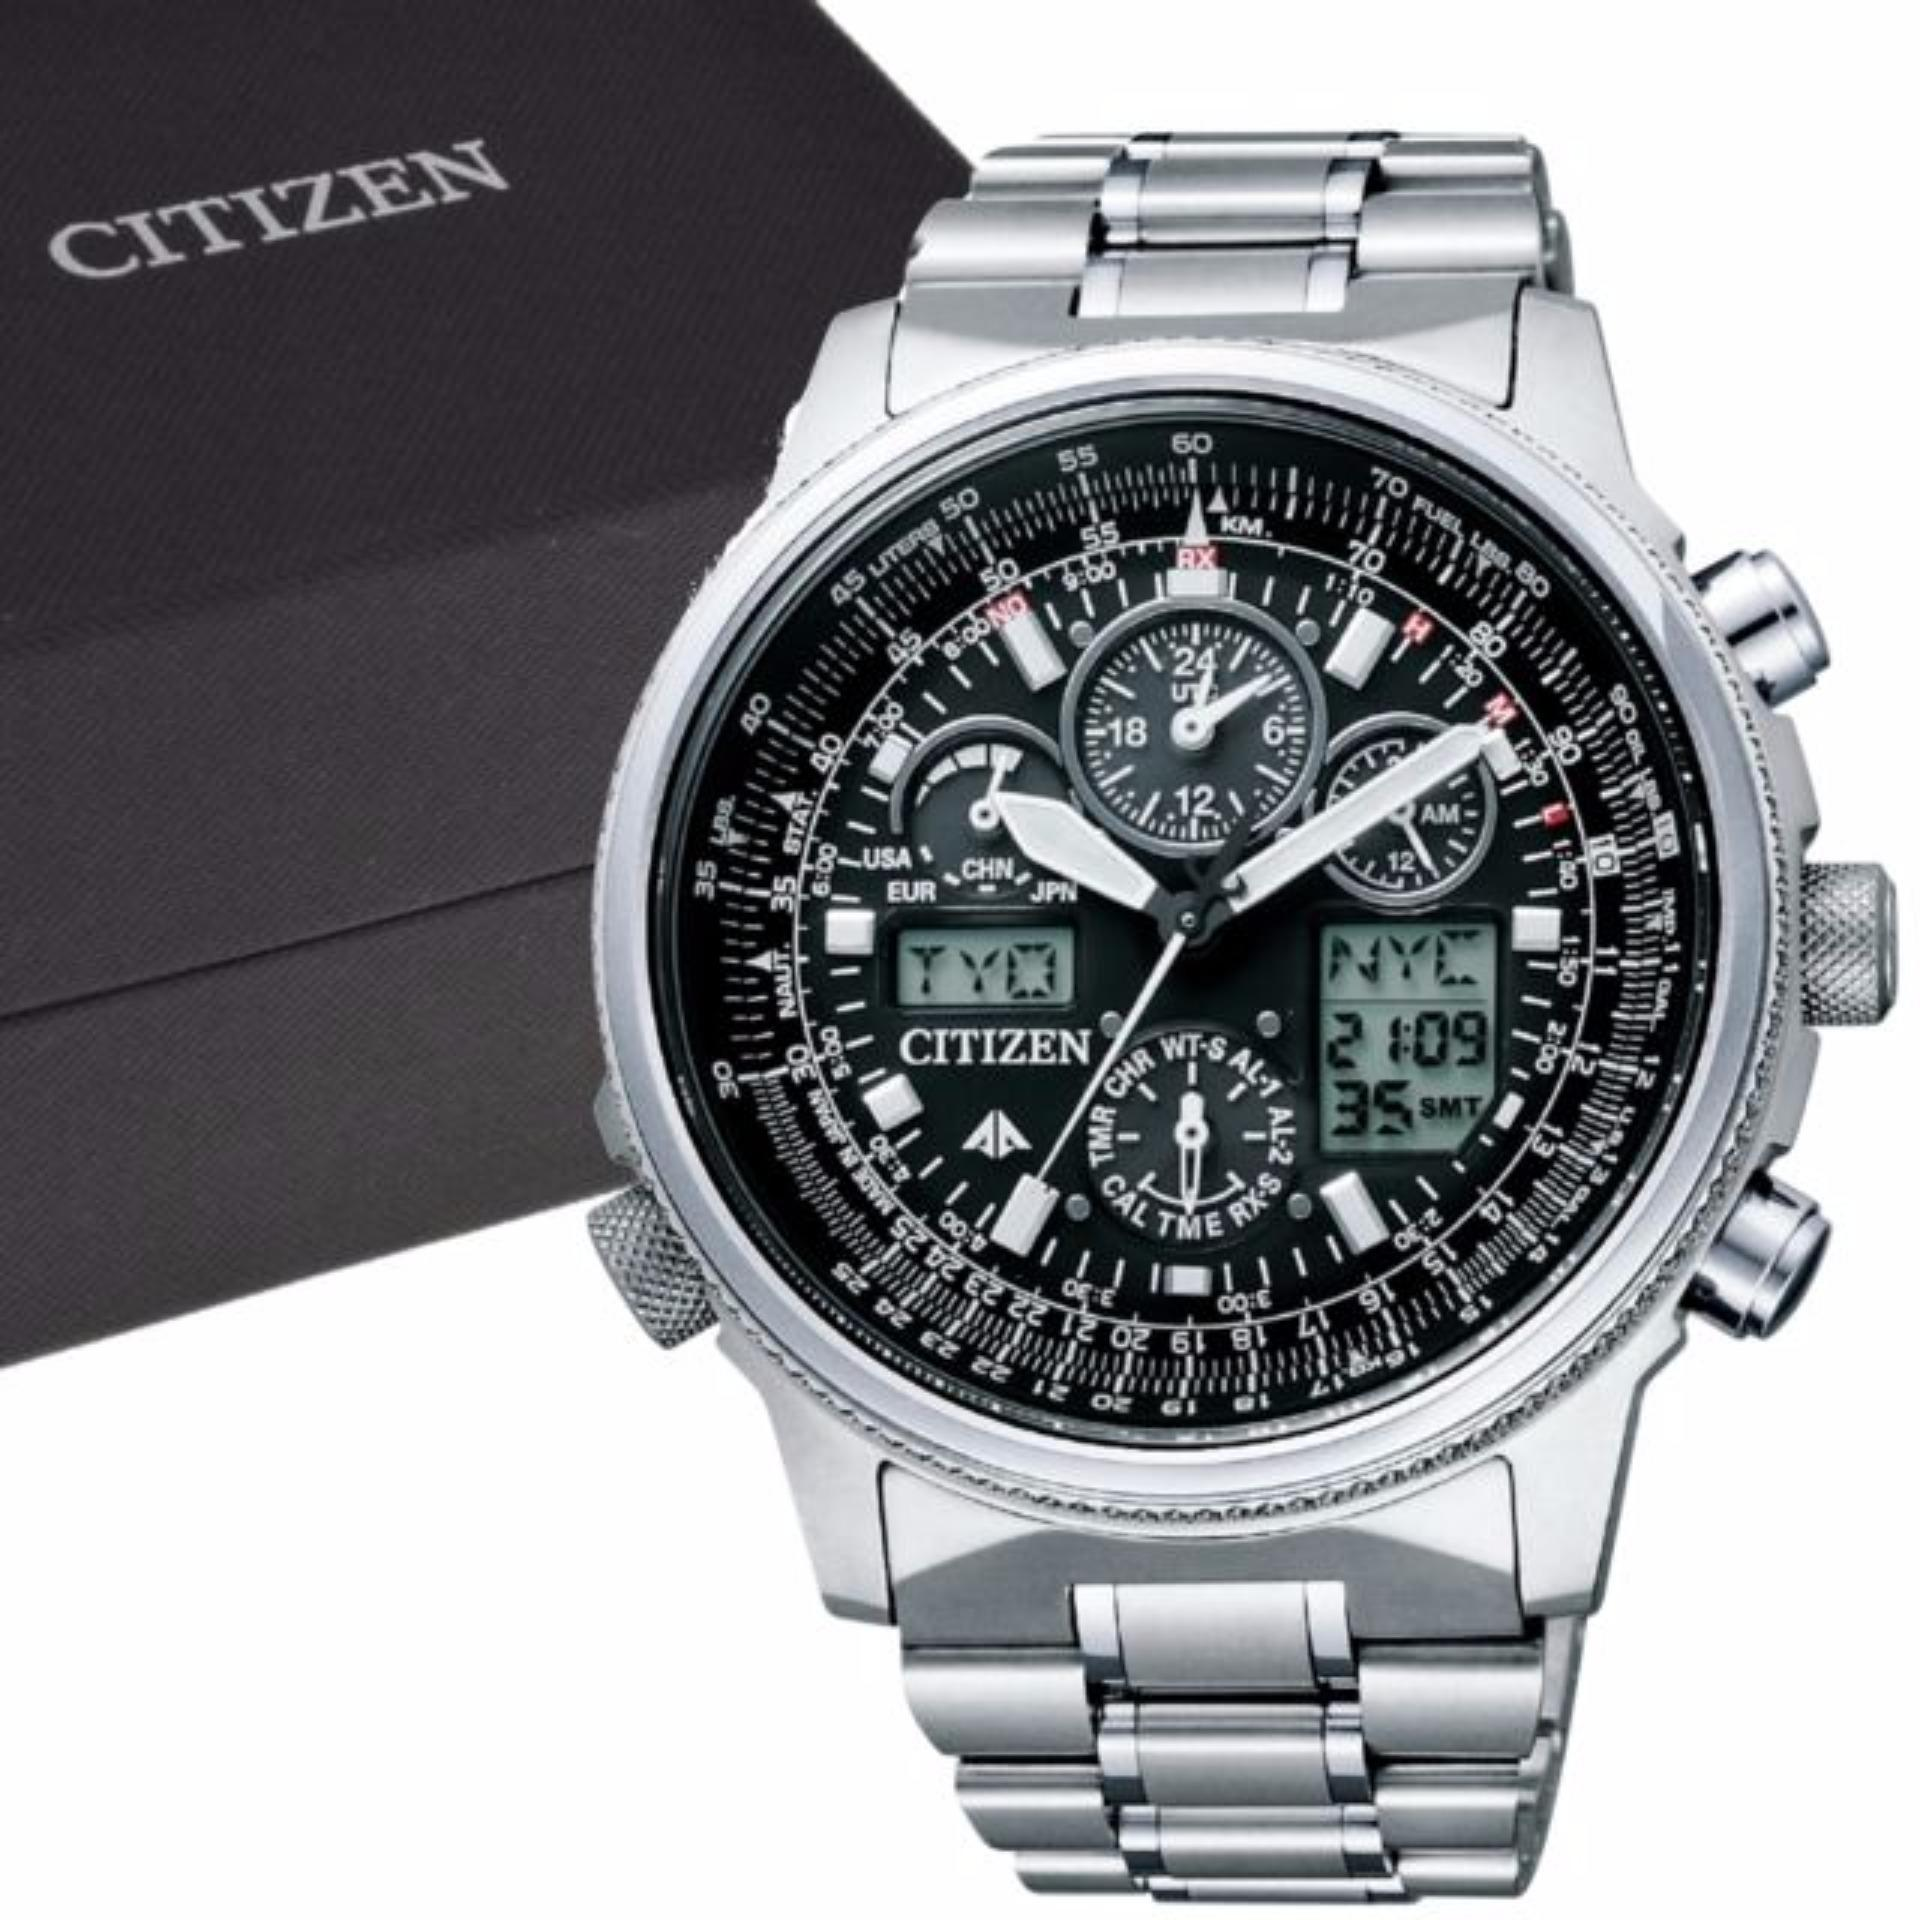 CITIZEN PMV65-2271 Promaster - Eco-Drive - Analog And Digital .